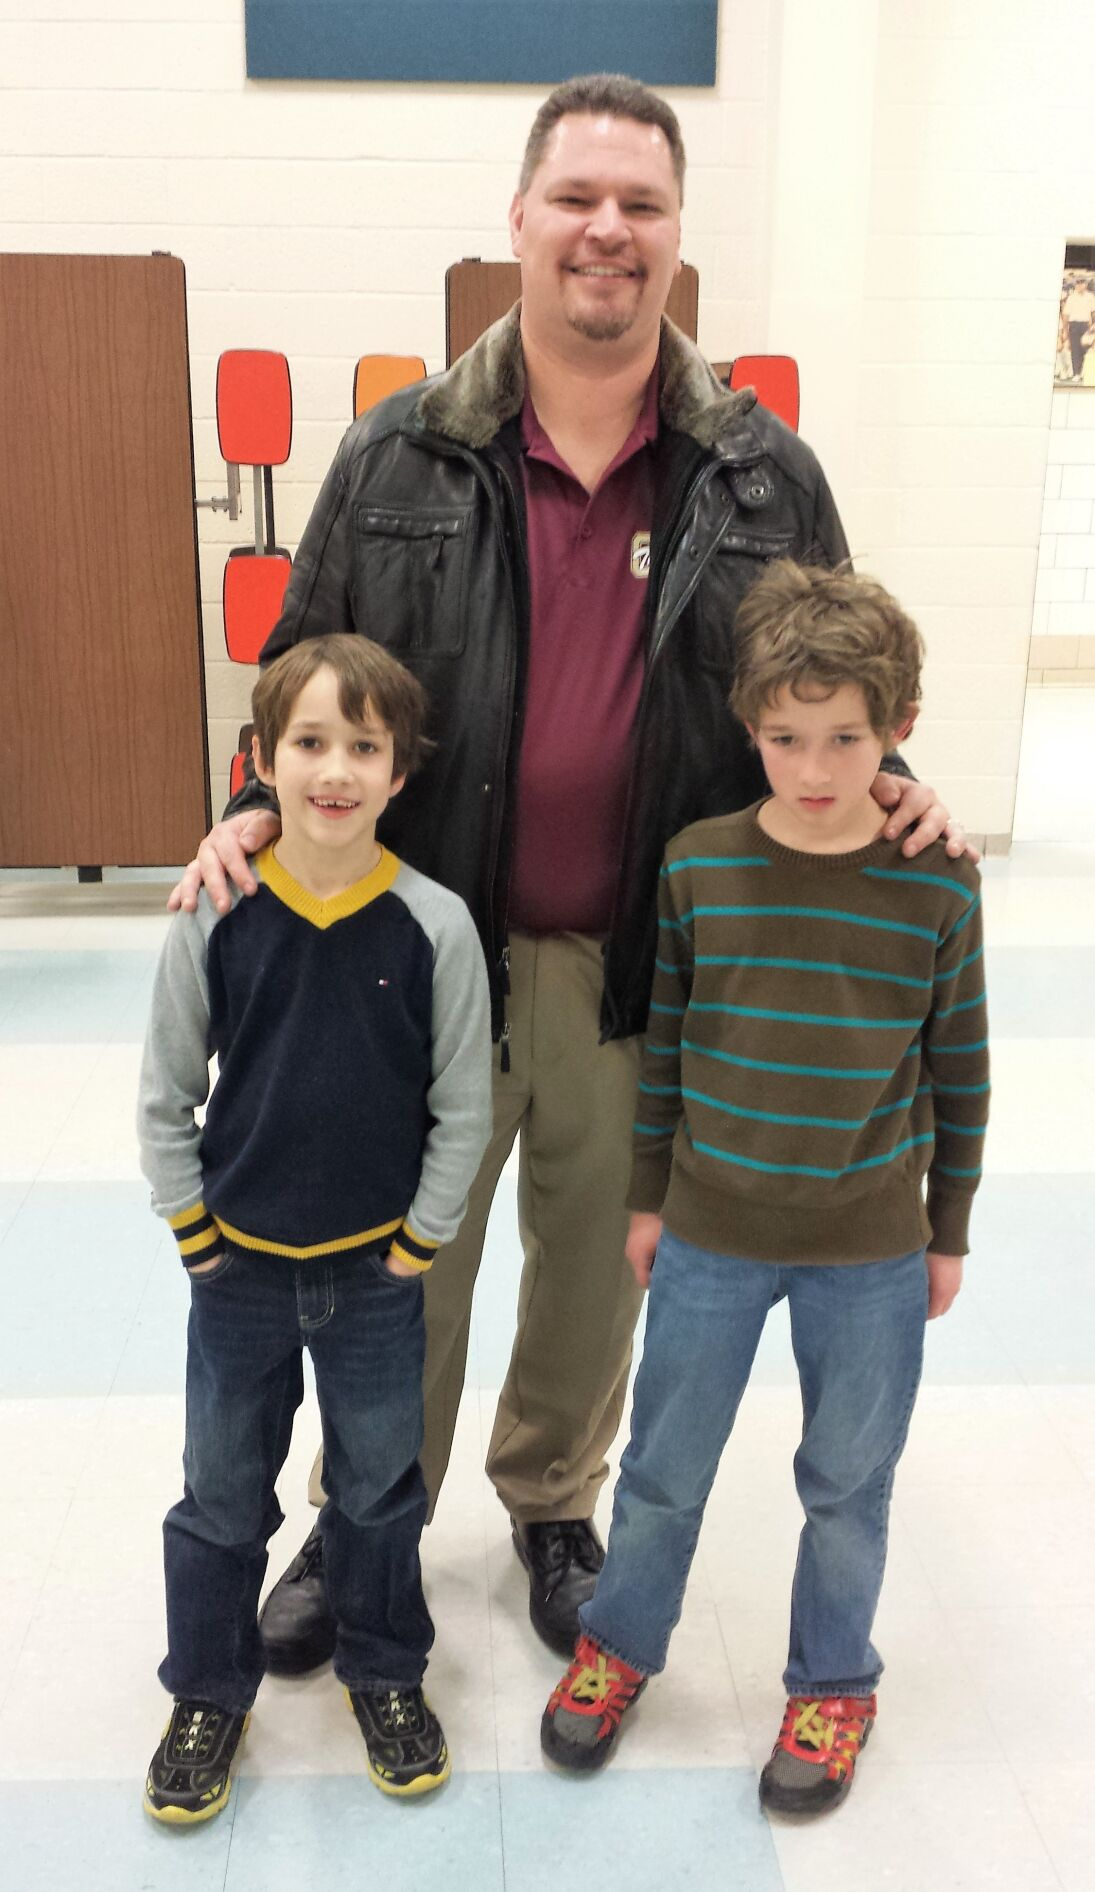 Chris Minerd with young fans